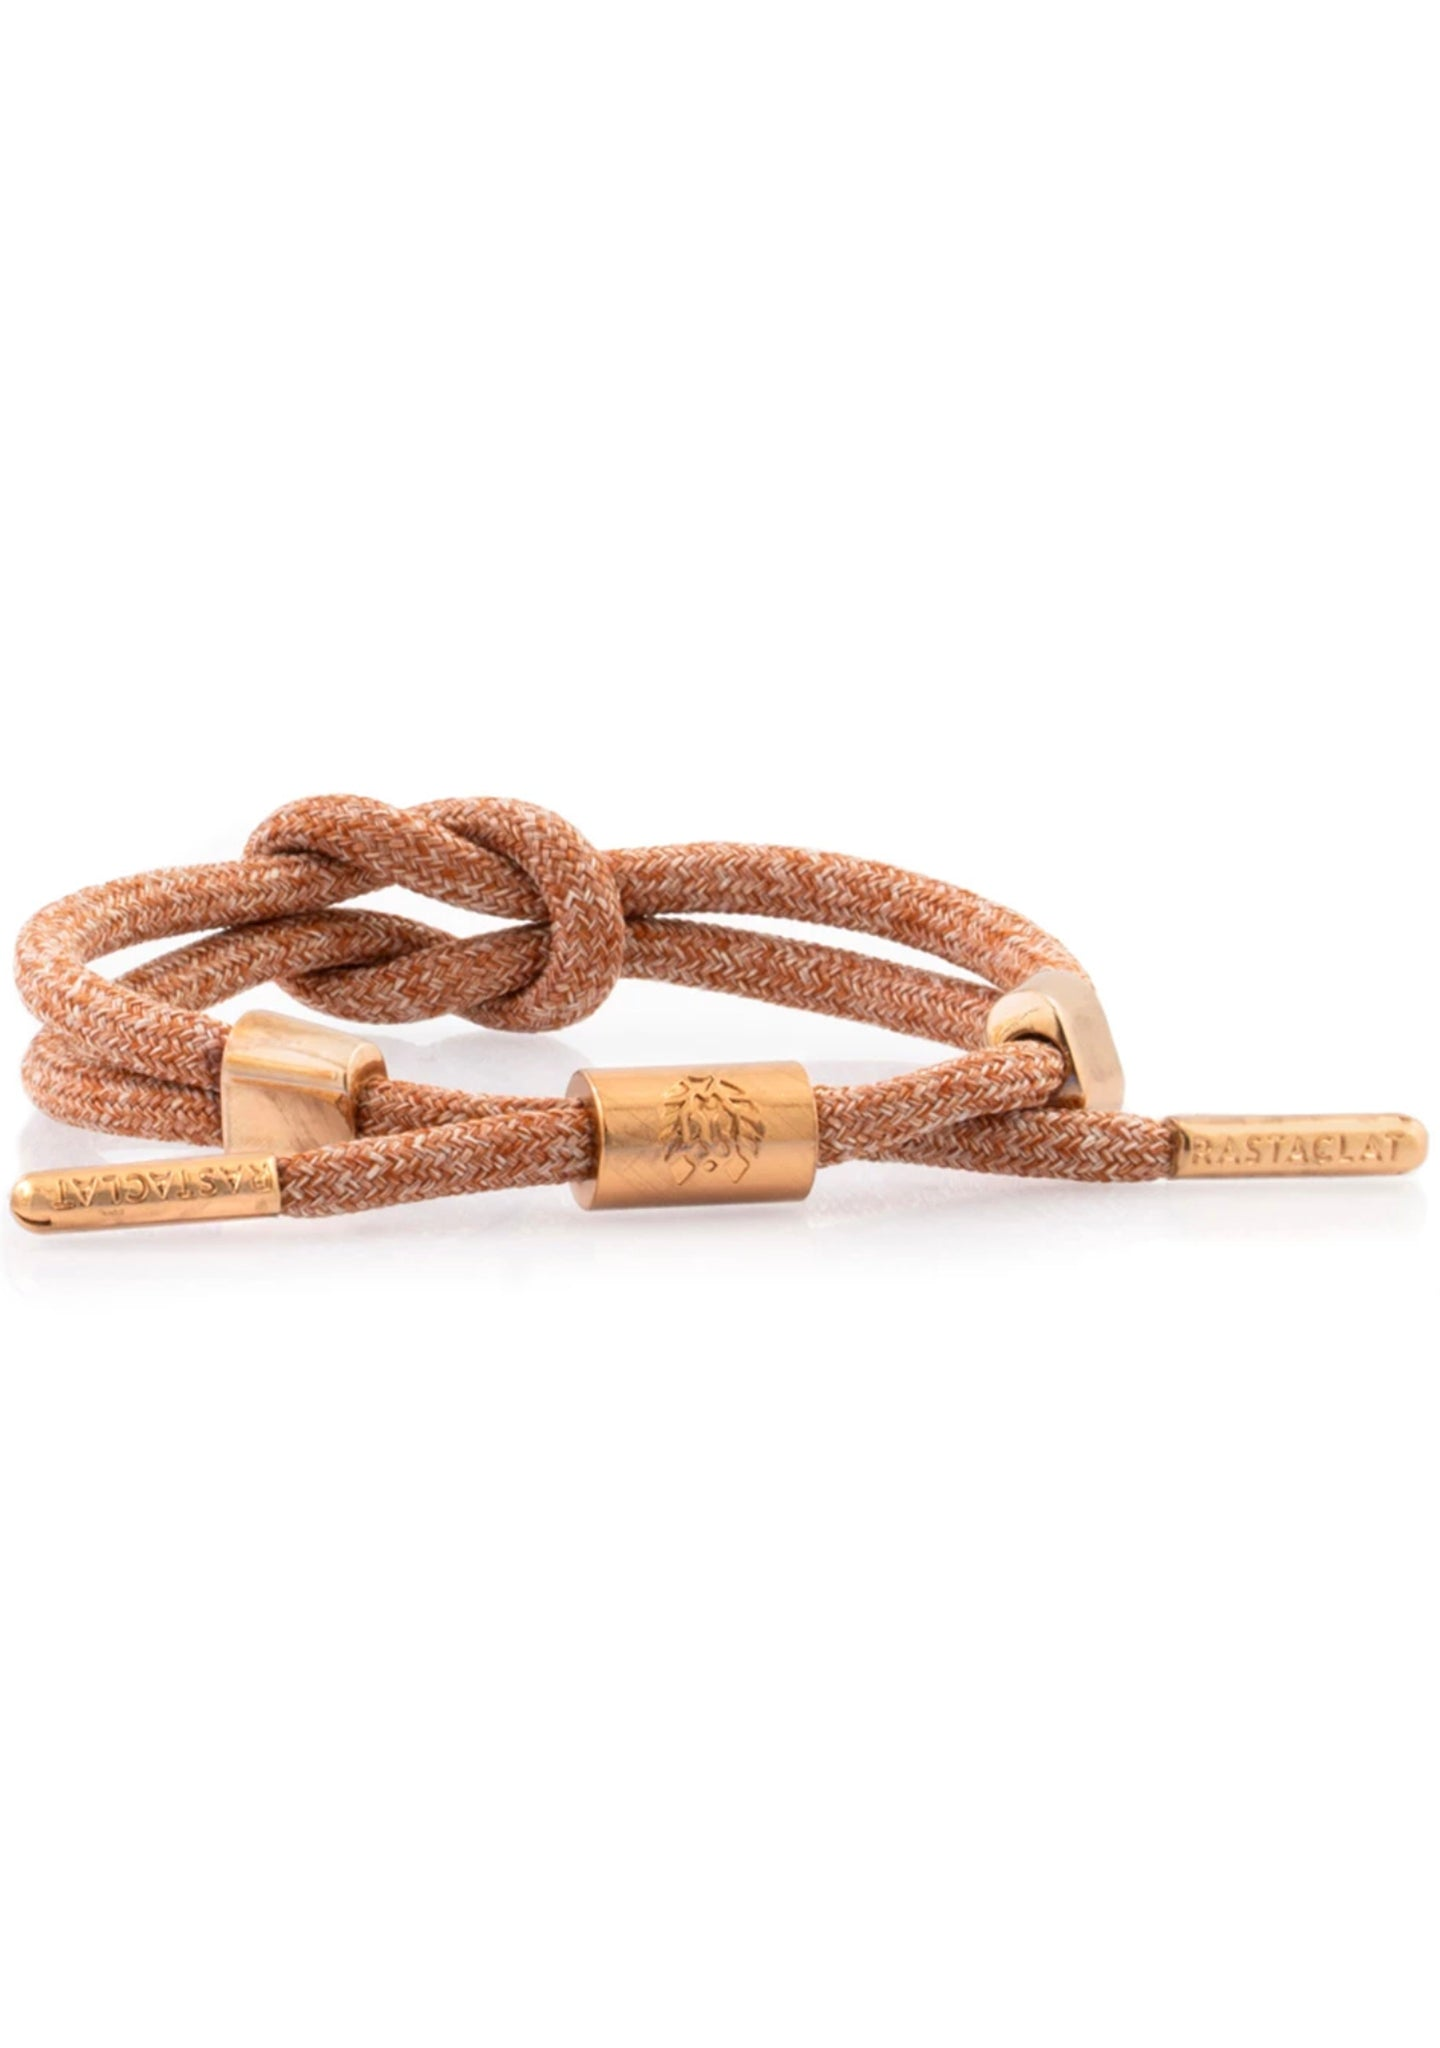 Sub Zero Kingston Knotaclat Bracelet